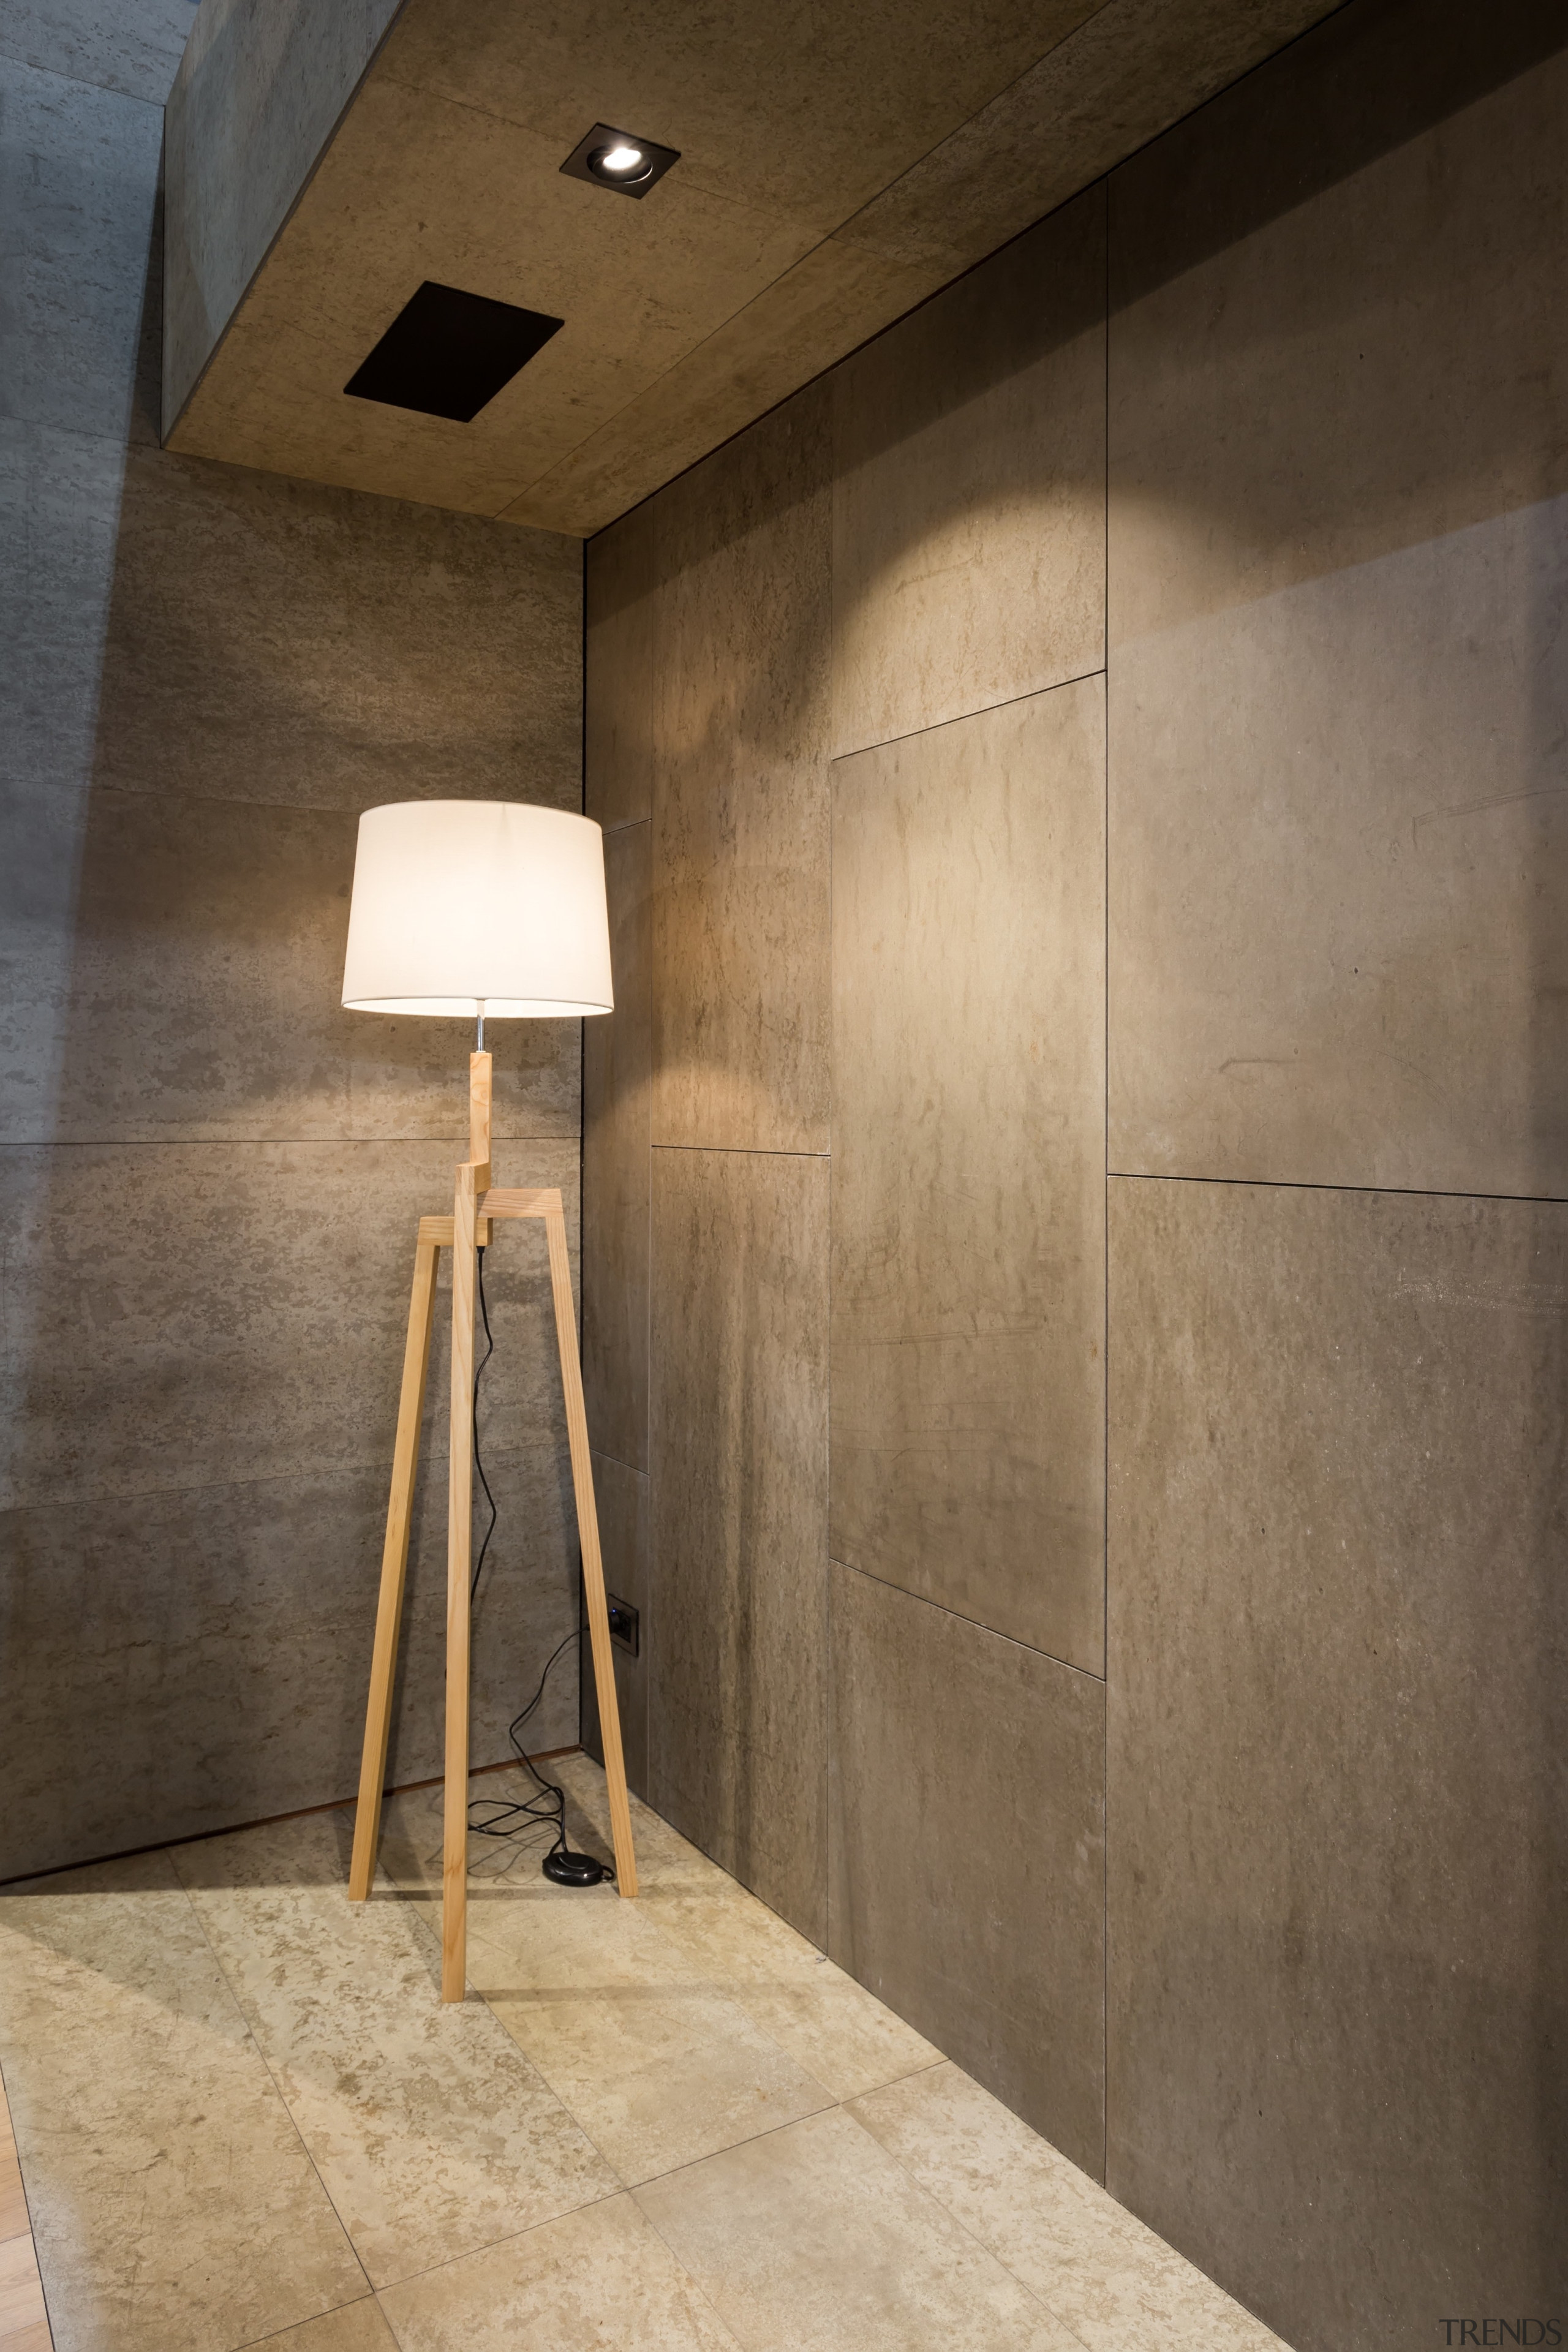 IMG_6170 - architecture   ceiling   daylighting   architecture, ceiling, daylighting, floor, flooring, interior design, lamp, light fixture, lighting, product design, tile, wall, brown